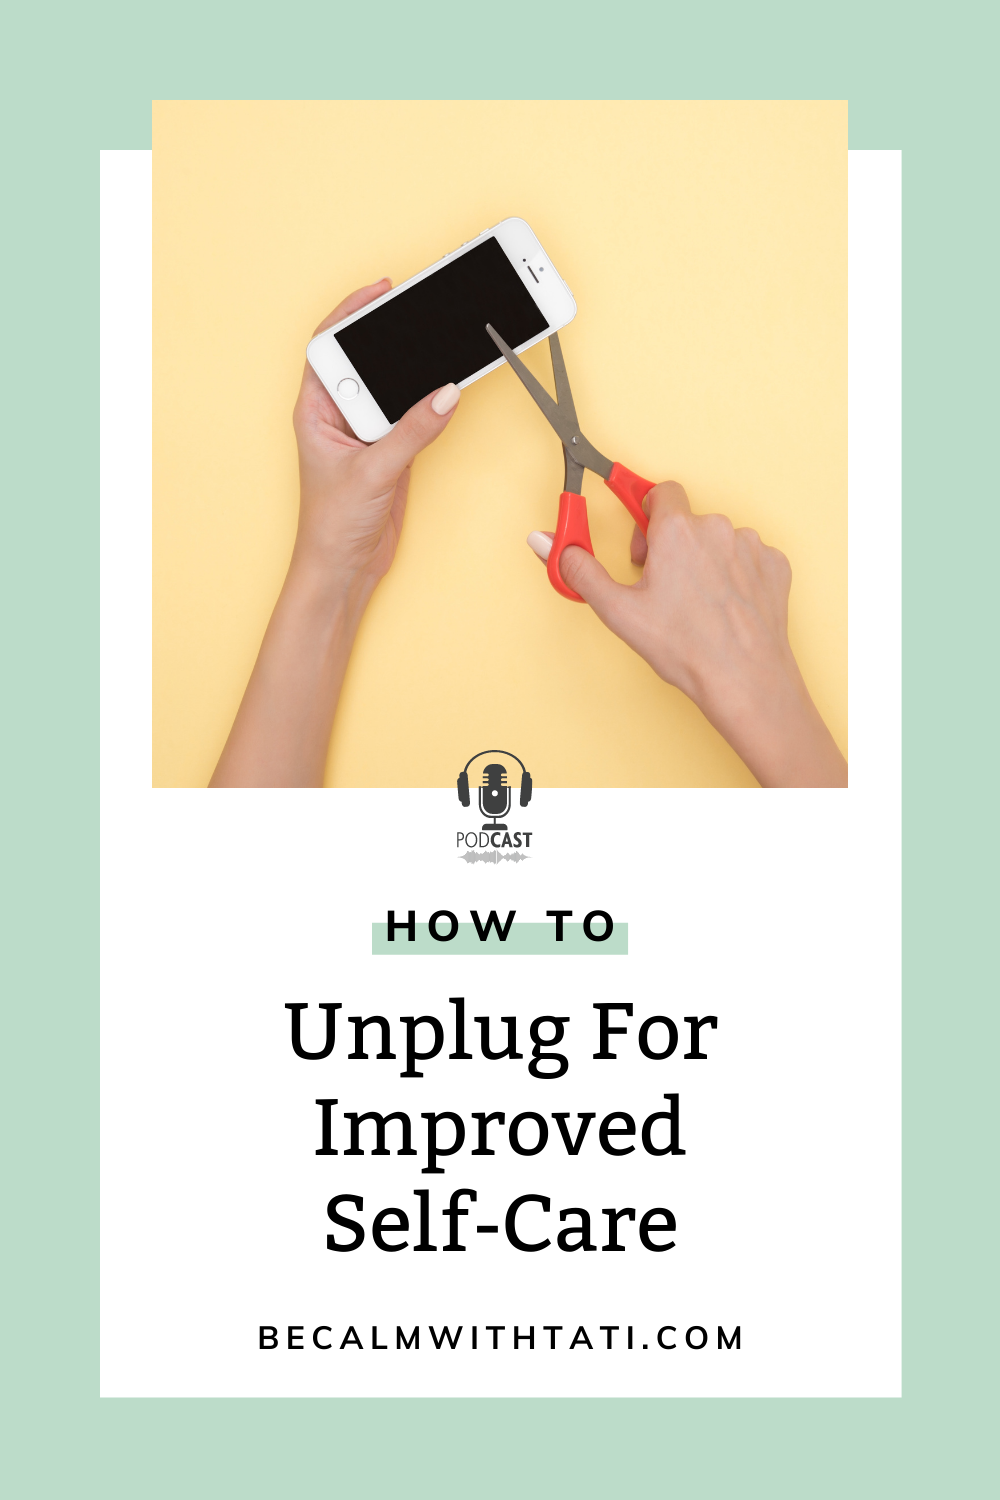 How To Unplug For Self-Care In Your Day-To-Day